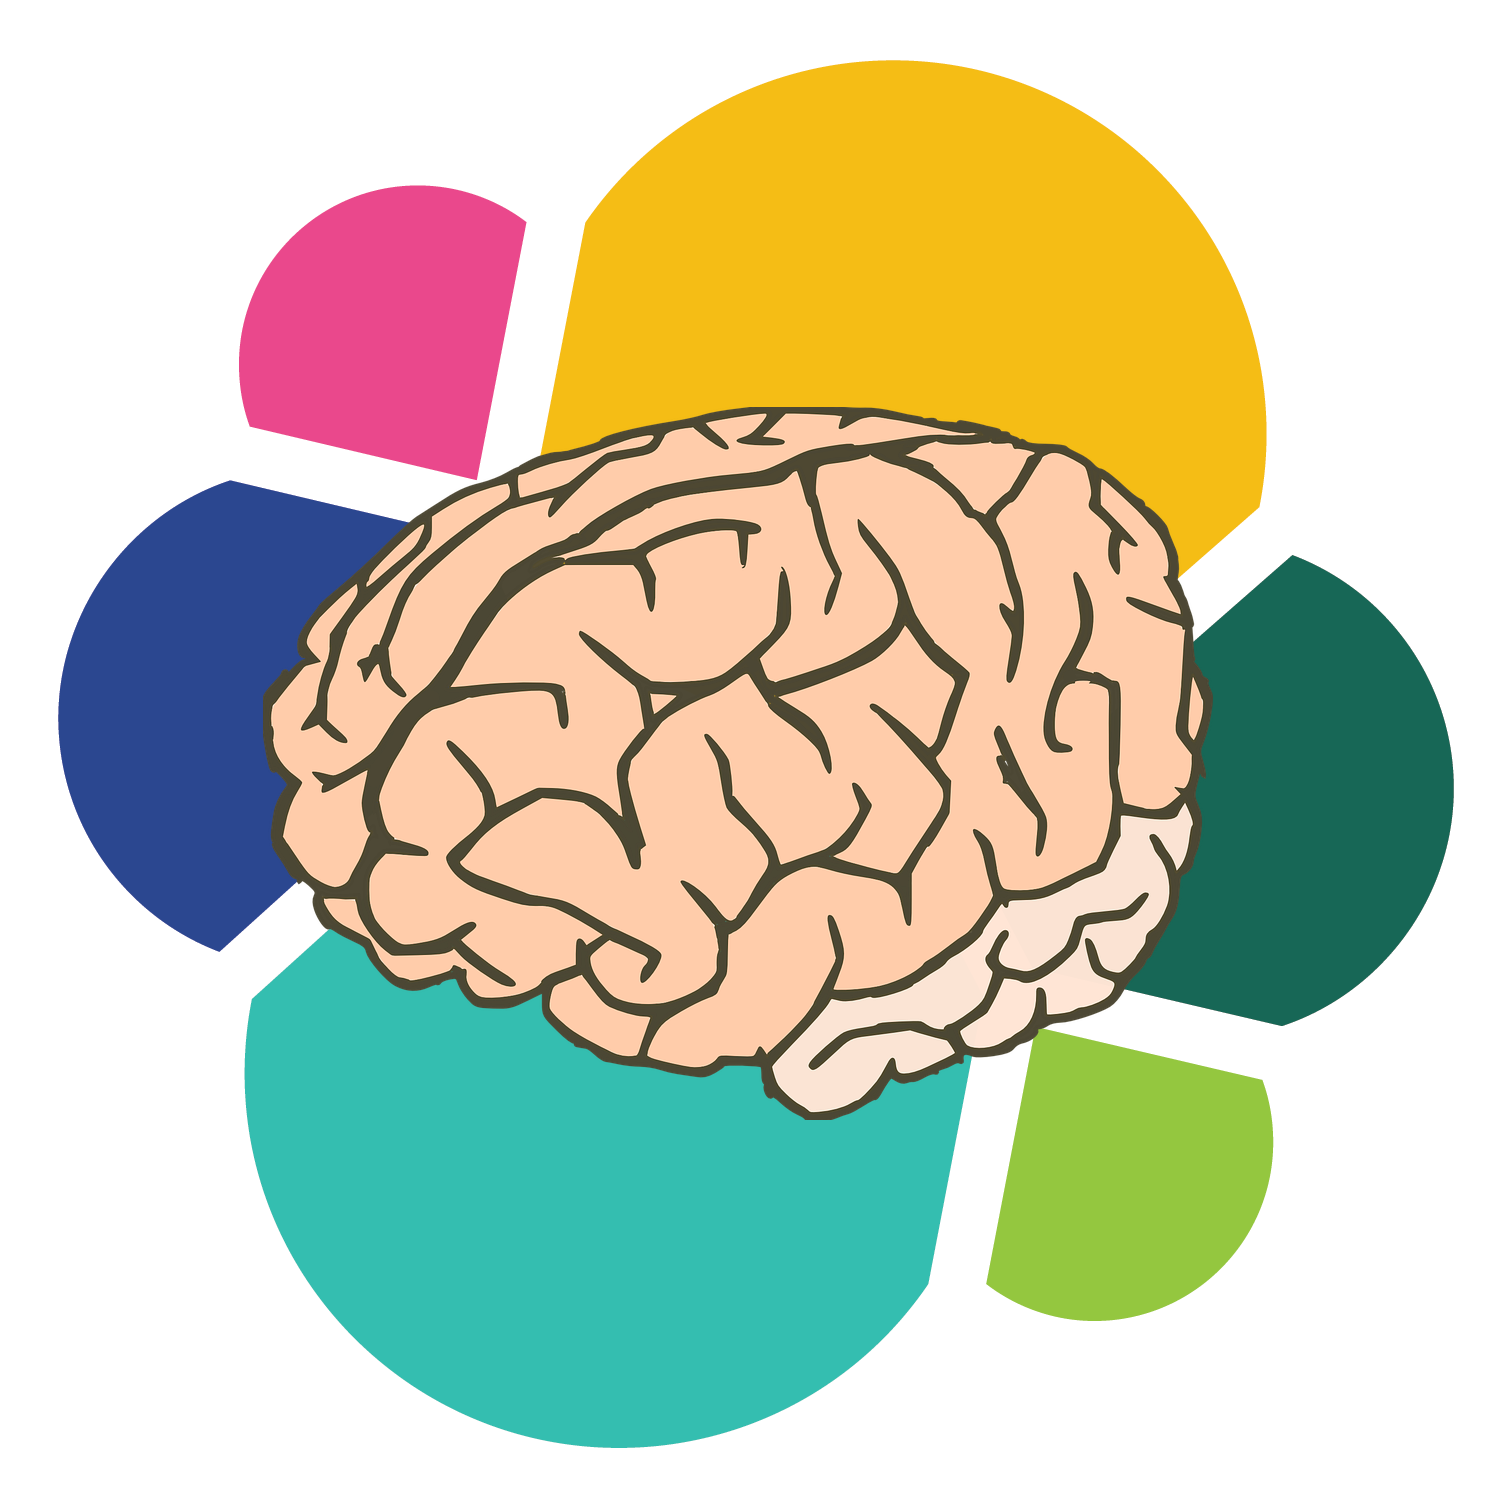 Cerebro vector. Collection of free coextended